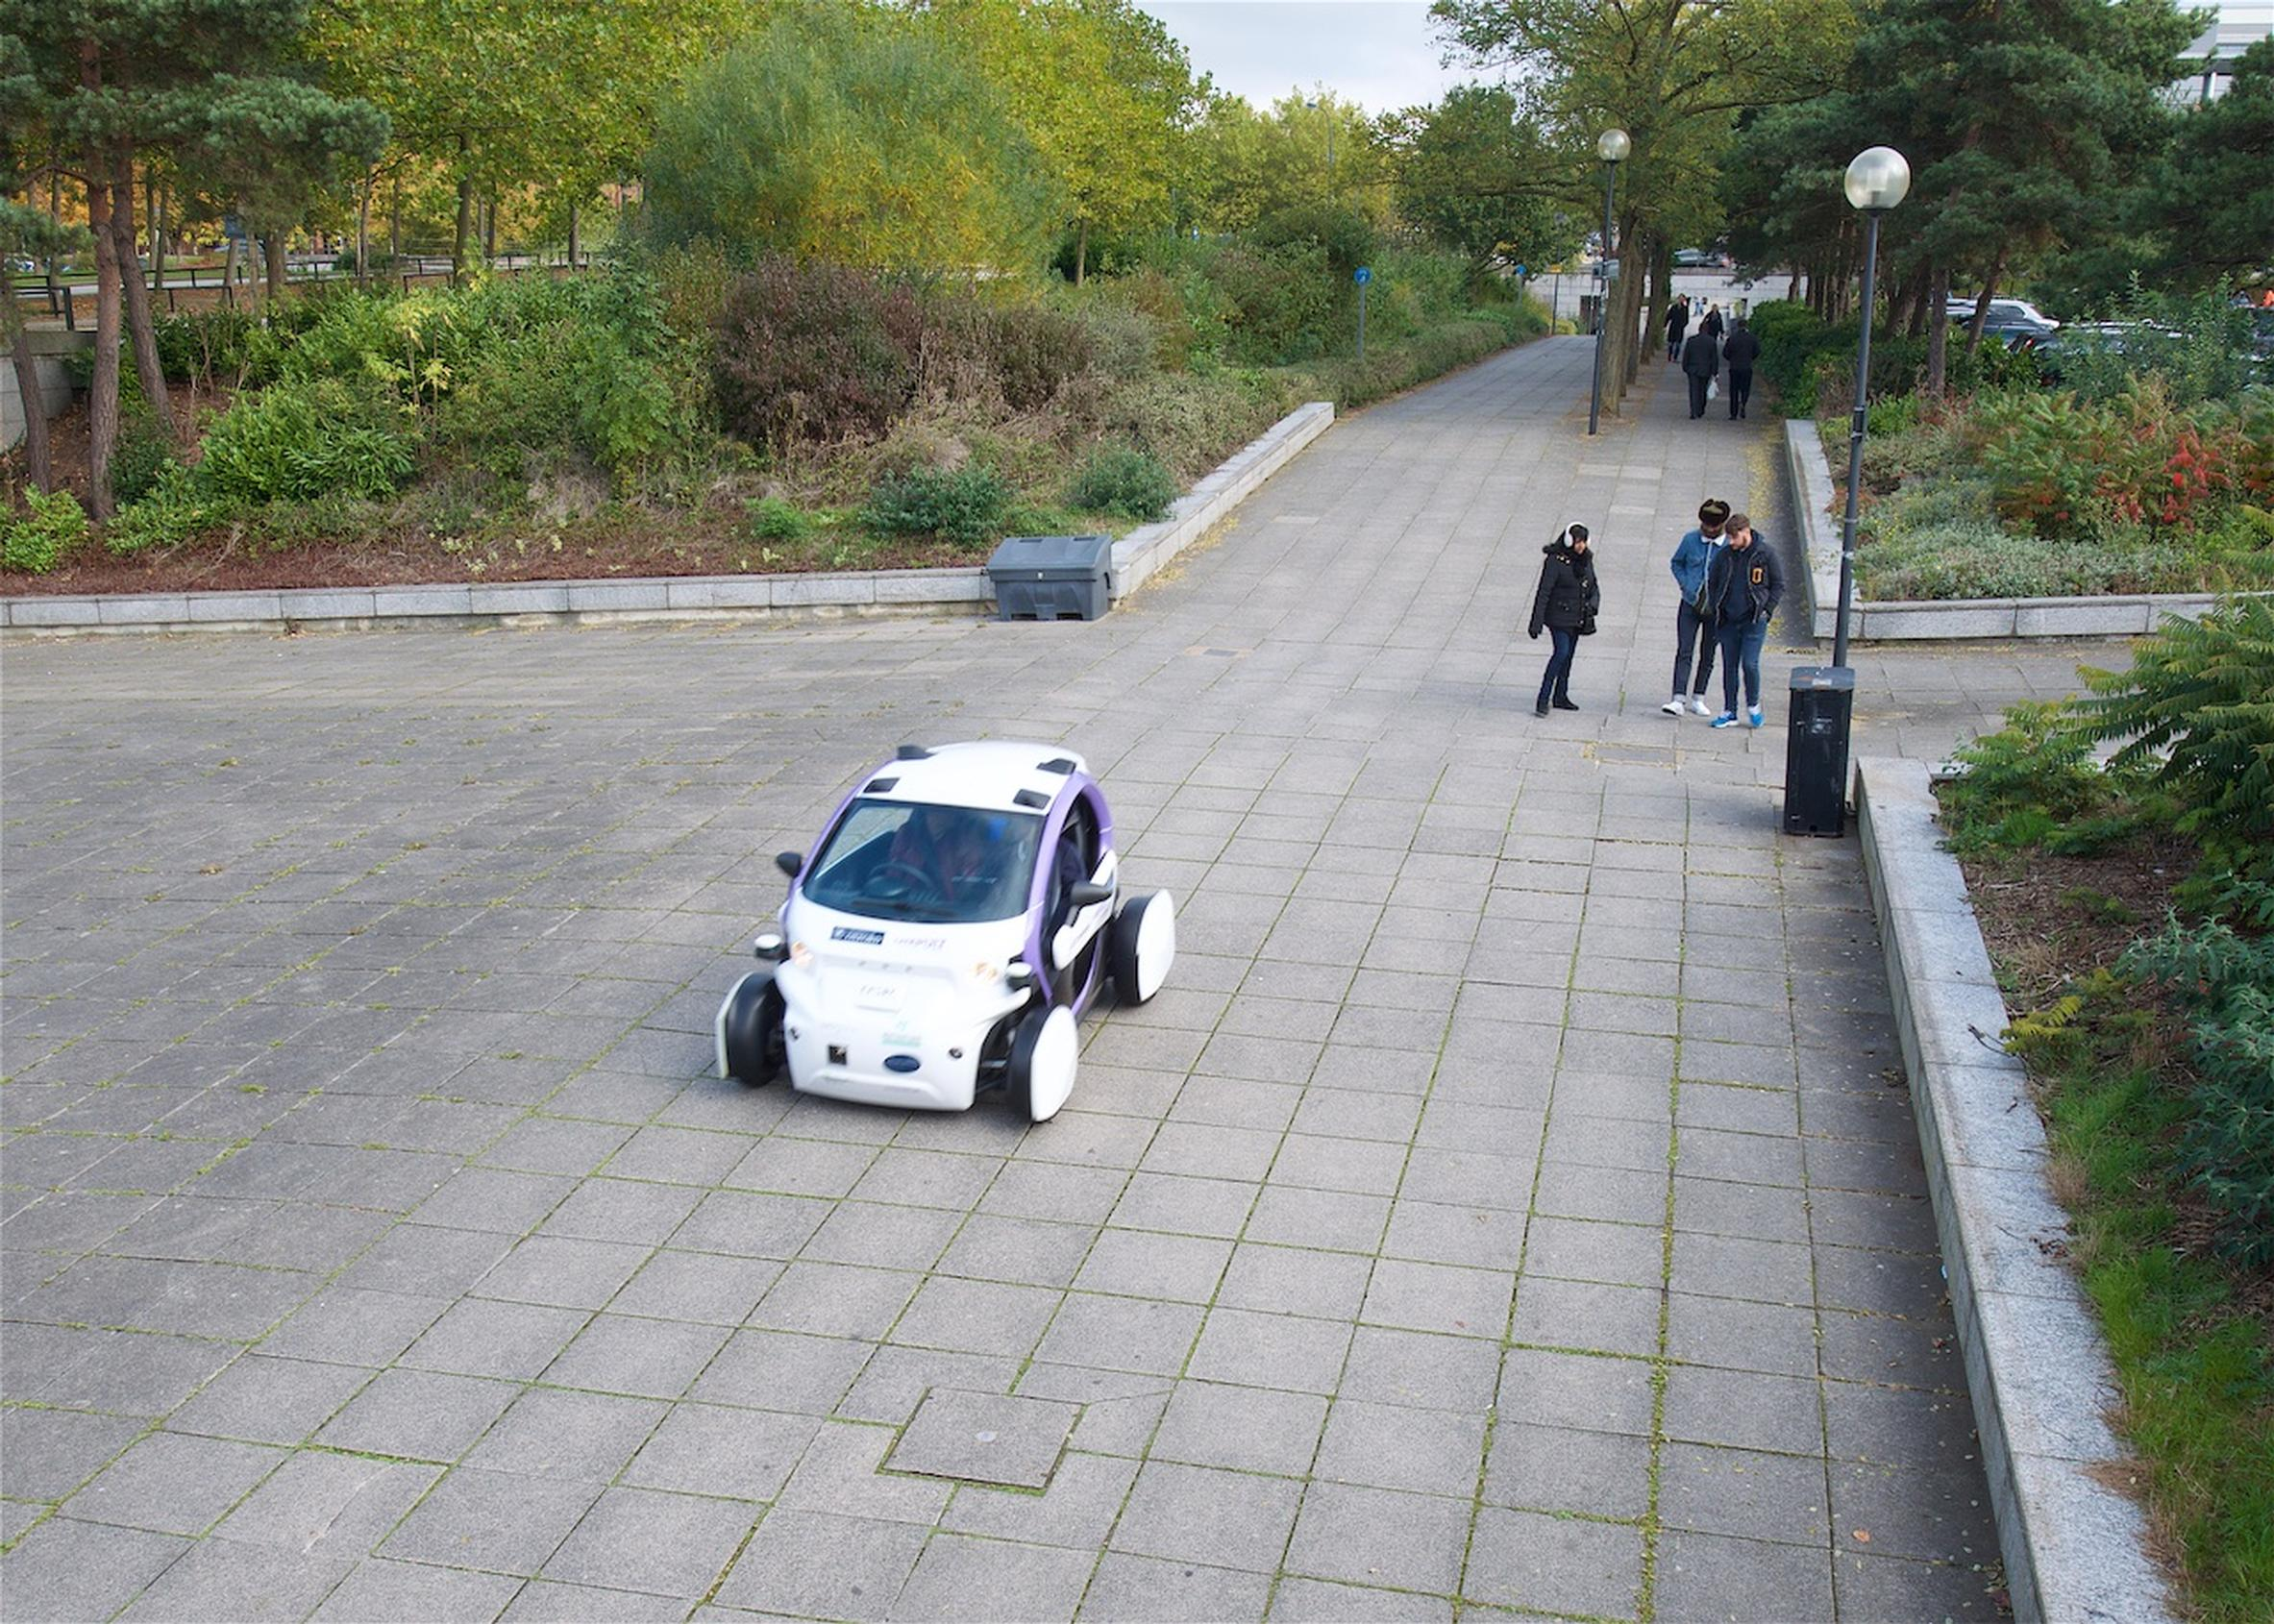 The LUTZ Pathfinder autonomous pod on the streets of Milton Keynes, which is hosting Smarter Travel LIVE!